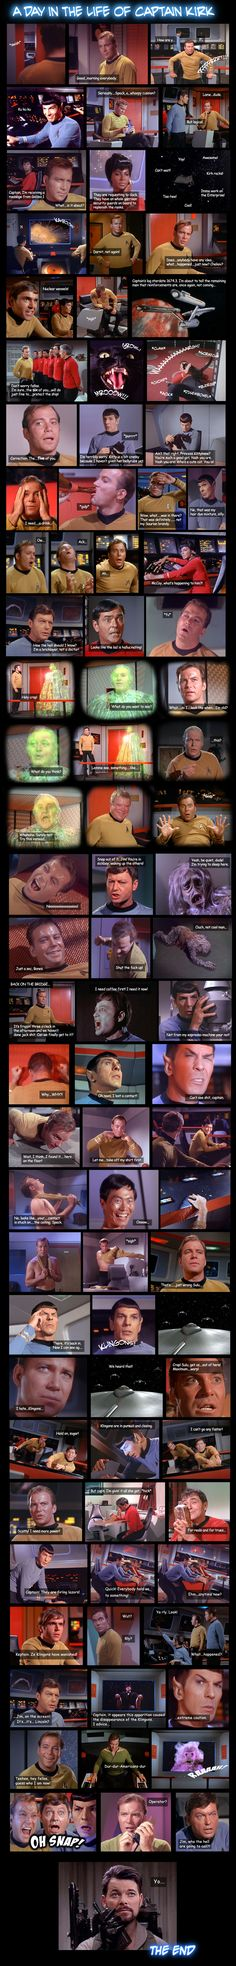 Star Trek: The Original Series by ~Walker82 on deviantART. Super funny!